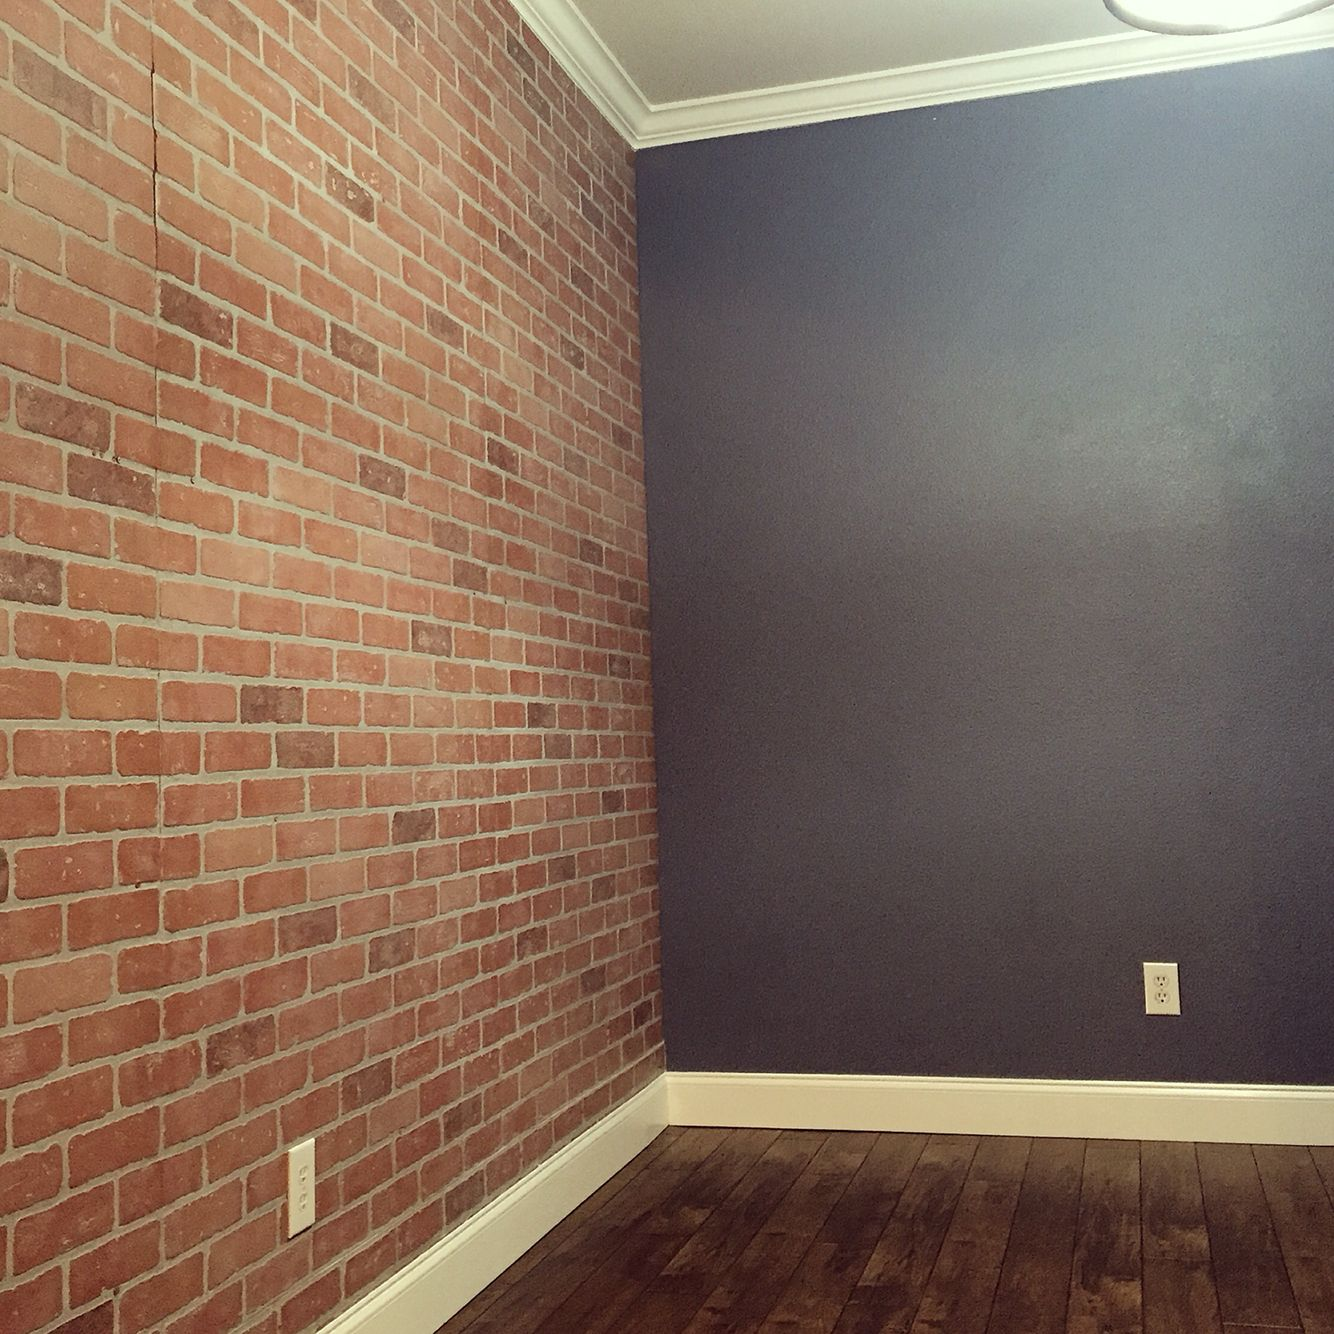 Faux Brick Wall Panels From Home Depot Brick Wall Bedroom Faux Brick Walls Brick Wall Paneling